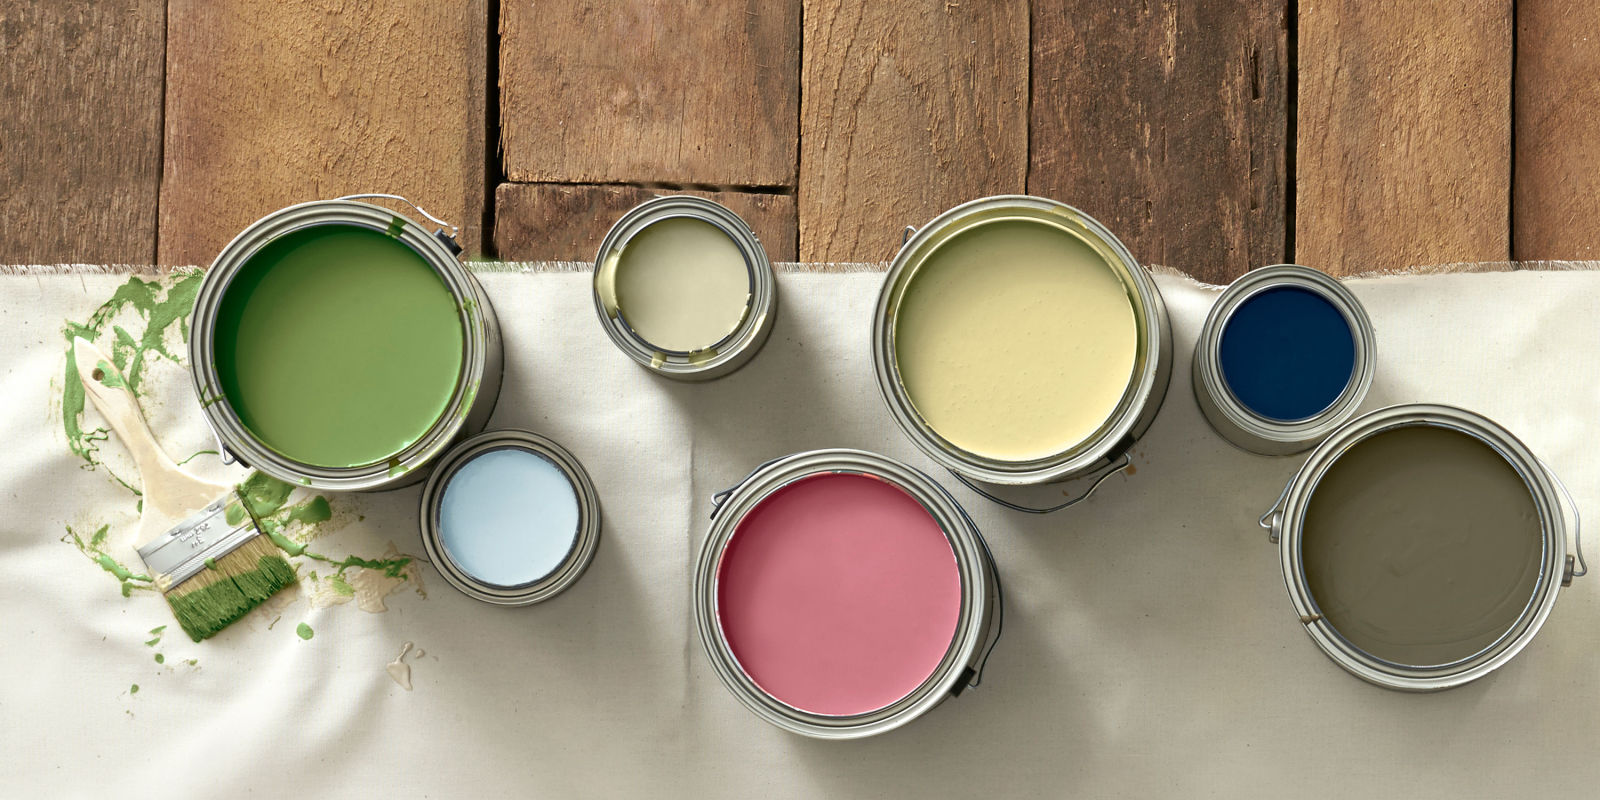 25  Best Interior Paint Color Ideas   Top Wall Paint Colors for Your Home. 25  Best Interior Paint Color Ideas   Top Wall Paint Colors for